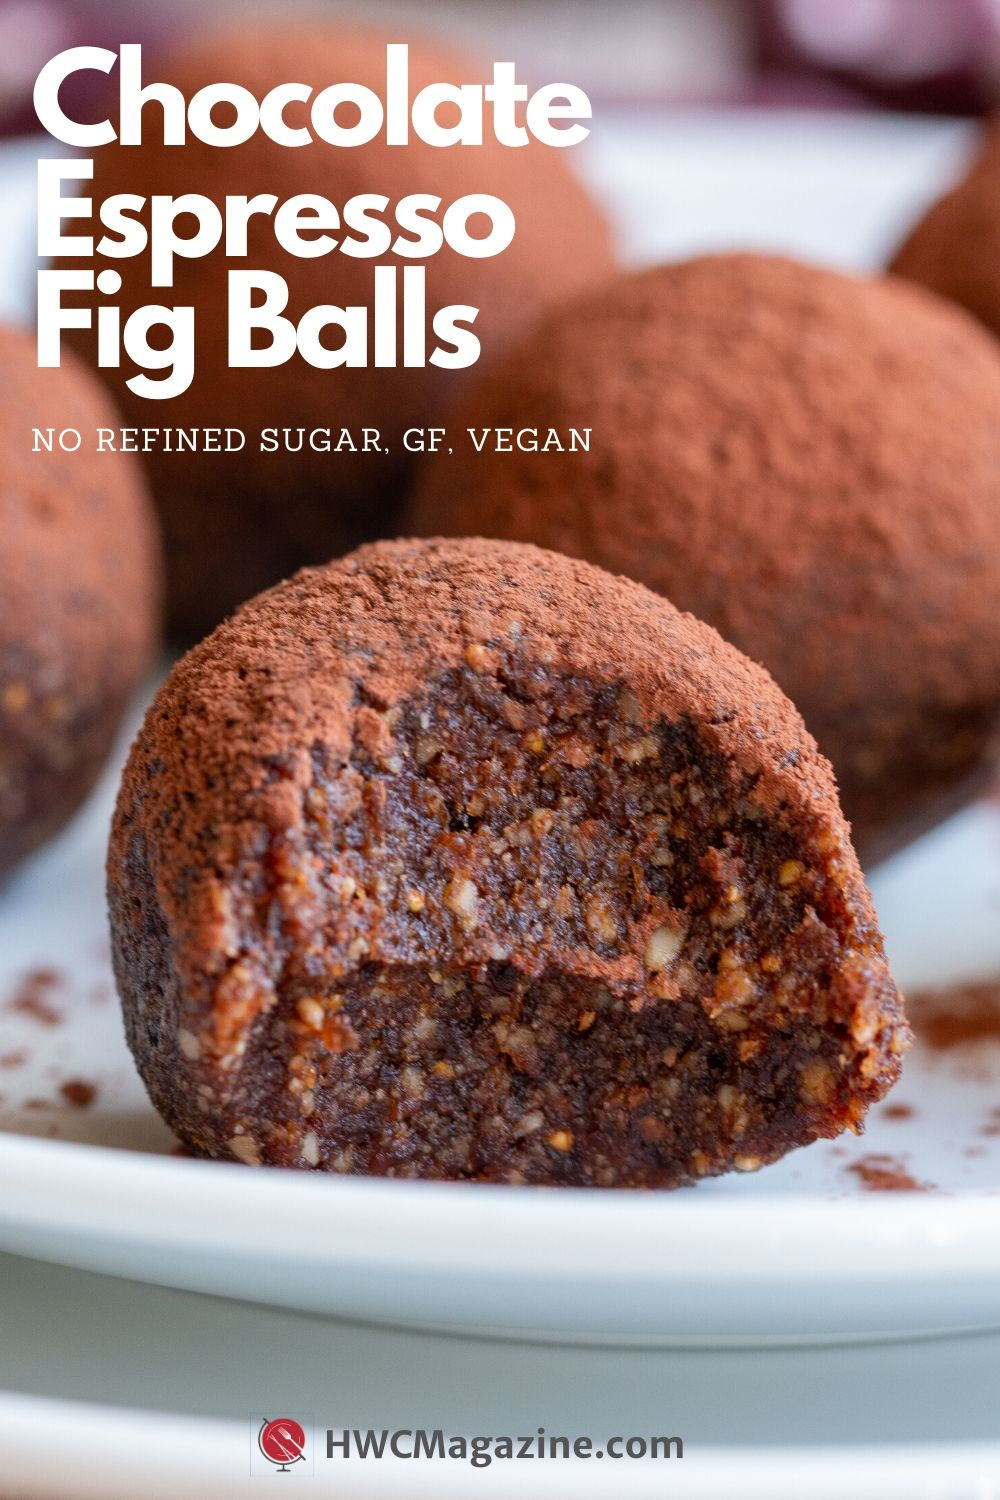 Chocolate Espresso Fig Balls / https:www.hwcmagazine.com